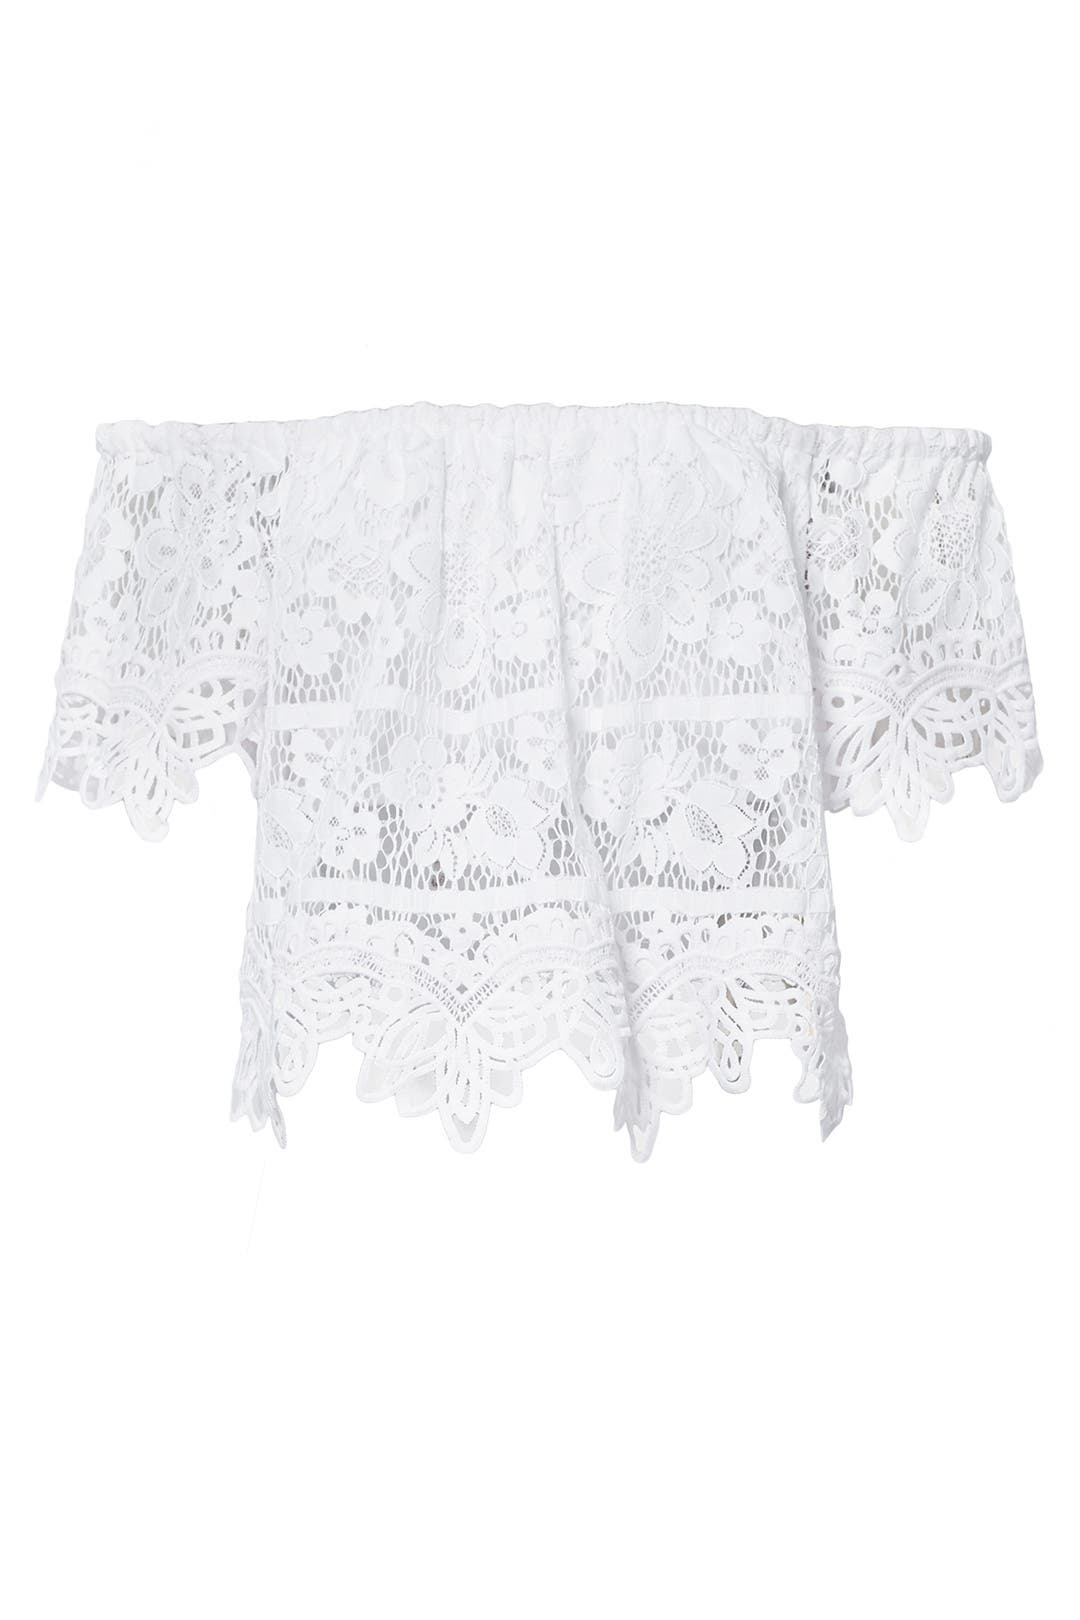 Silver pearl marisol white lace 1 - Free People White Lace